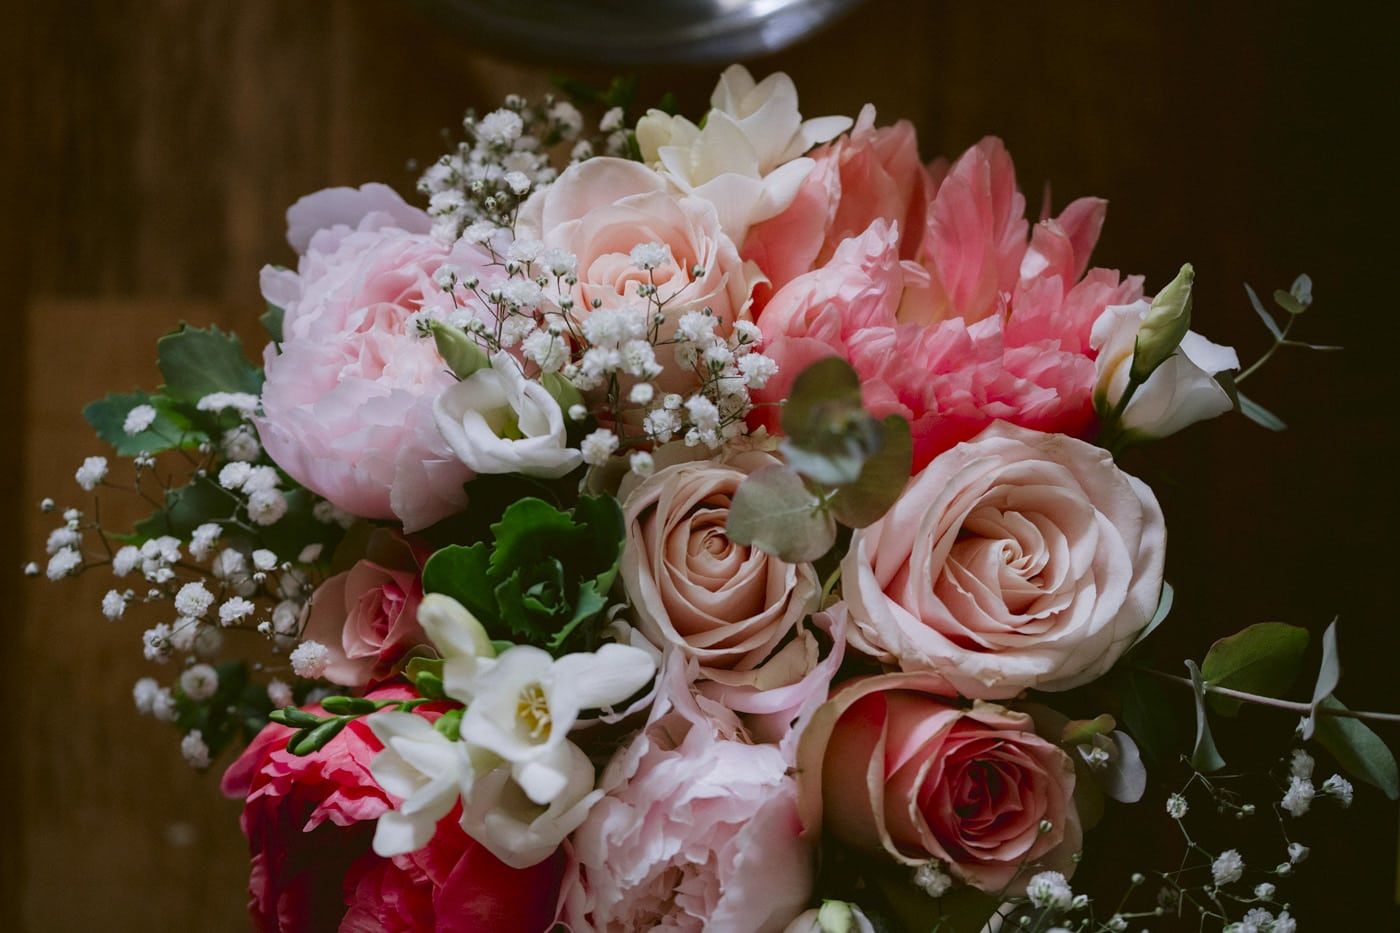 Photograph of a bunch of Flowers for Wedding Day